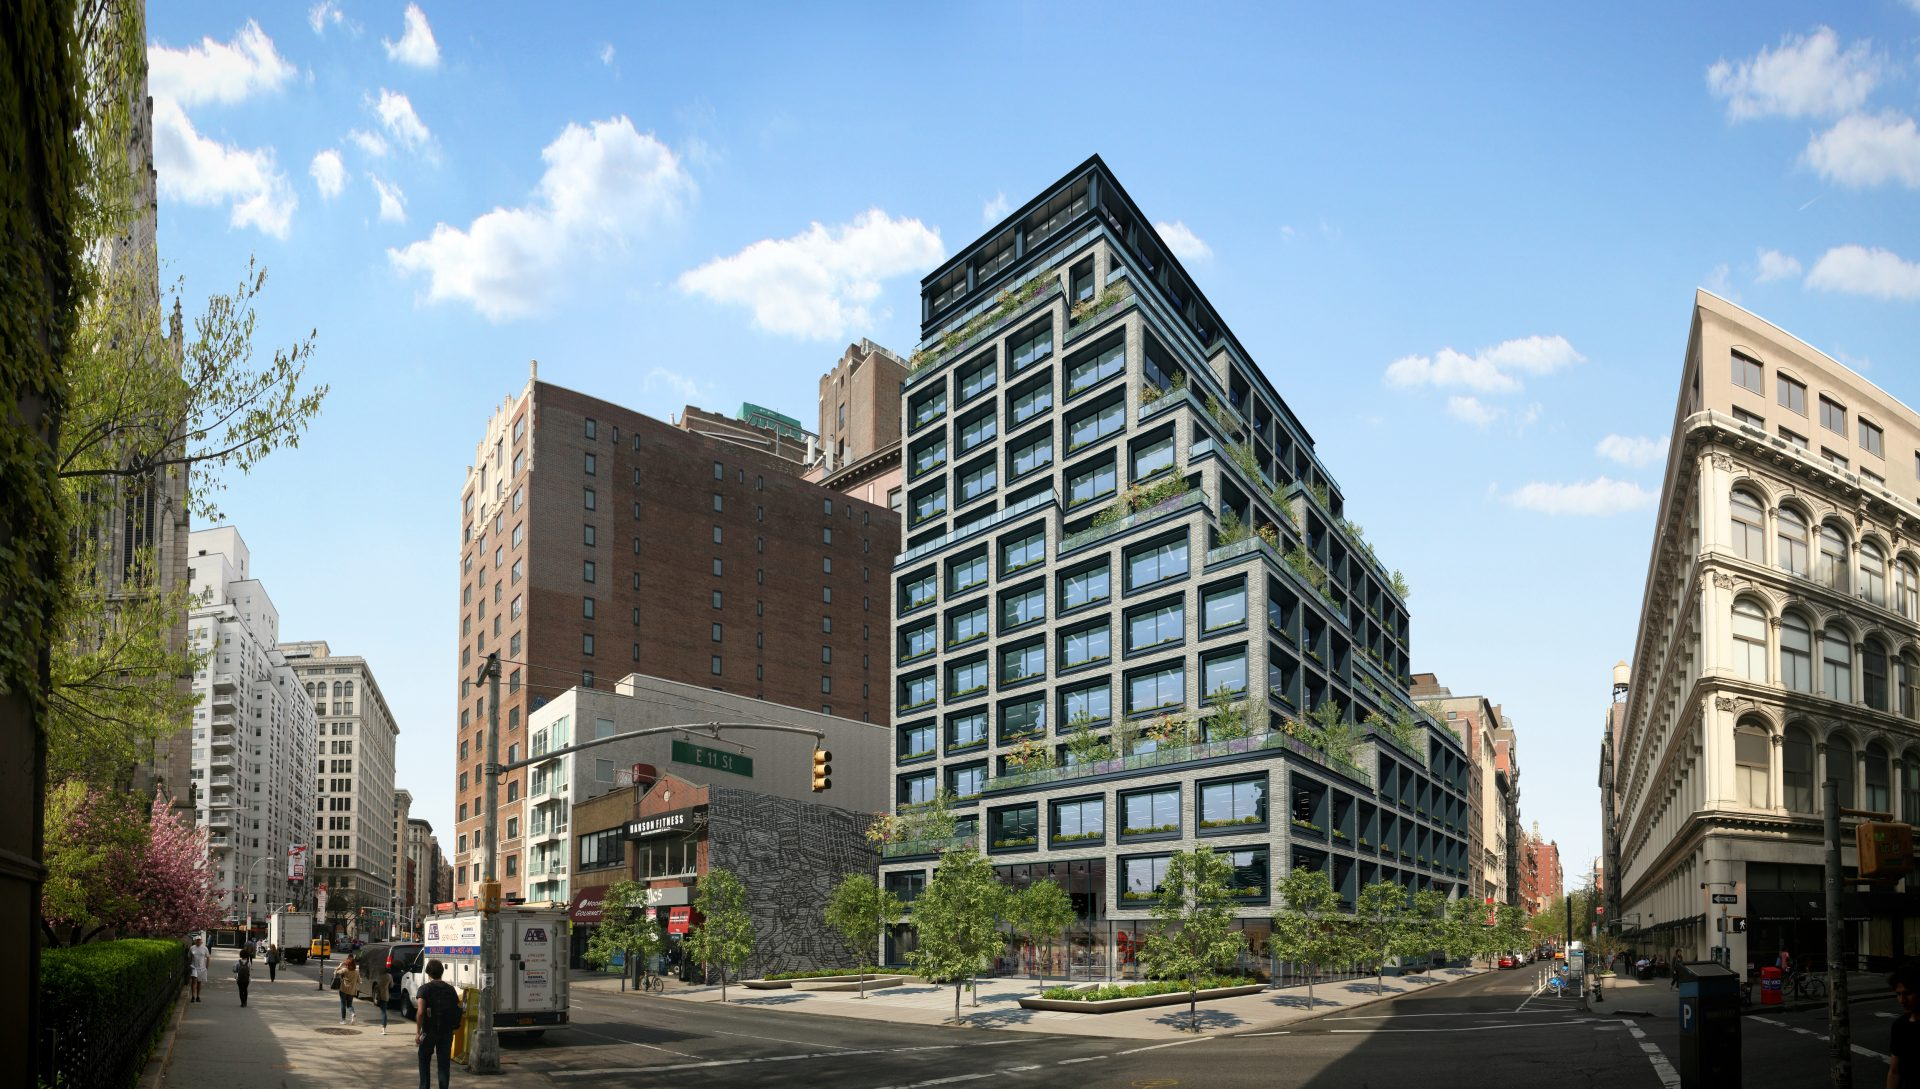 Exterior view of the proposed Silicon Alley office building